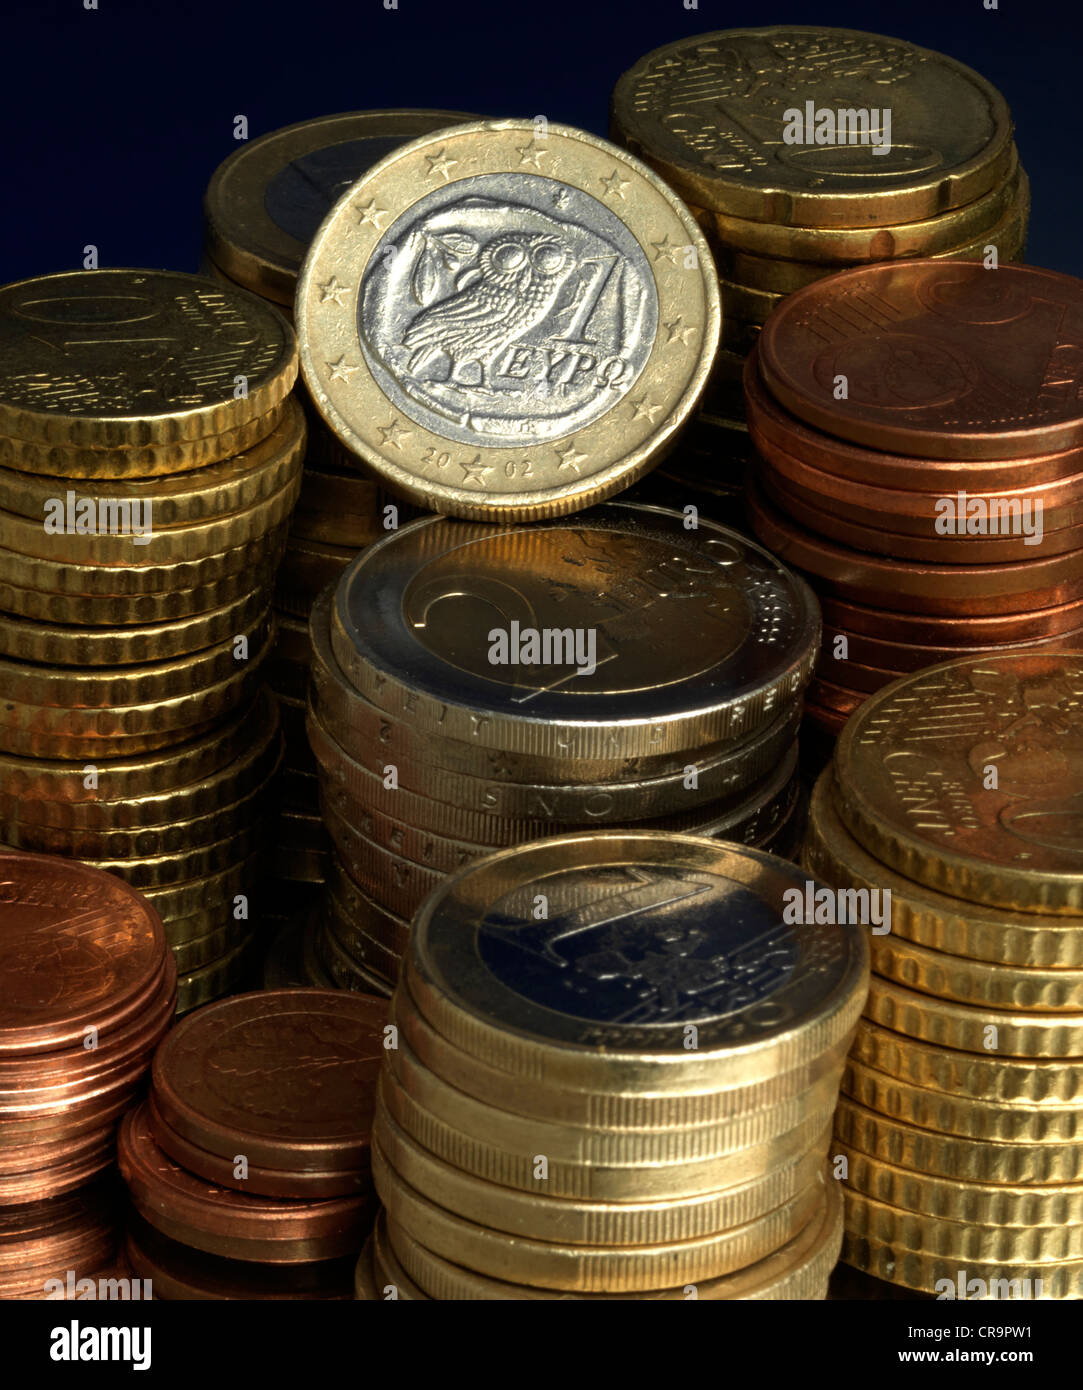 currency devaluation Greek Euro Griechenland Euro from Greek griechischer Euro Euroabwertung currency devaluation - Stock Image